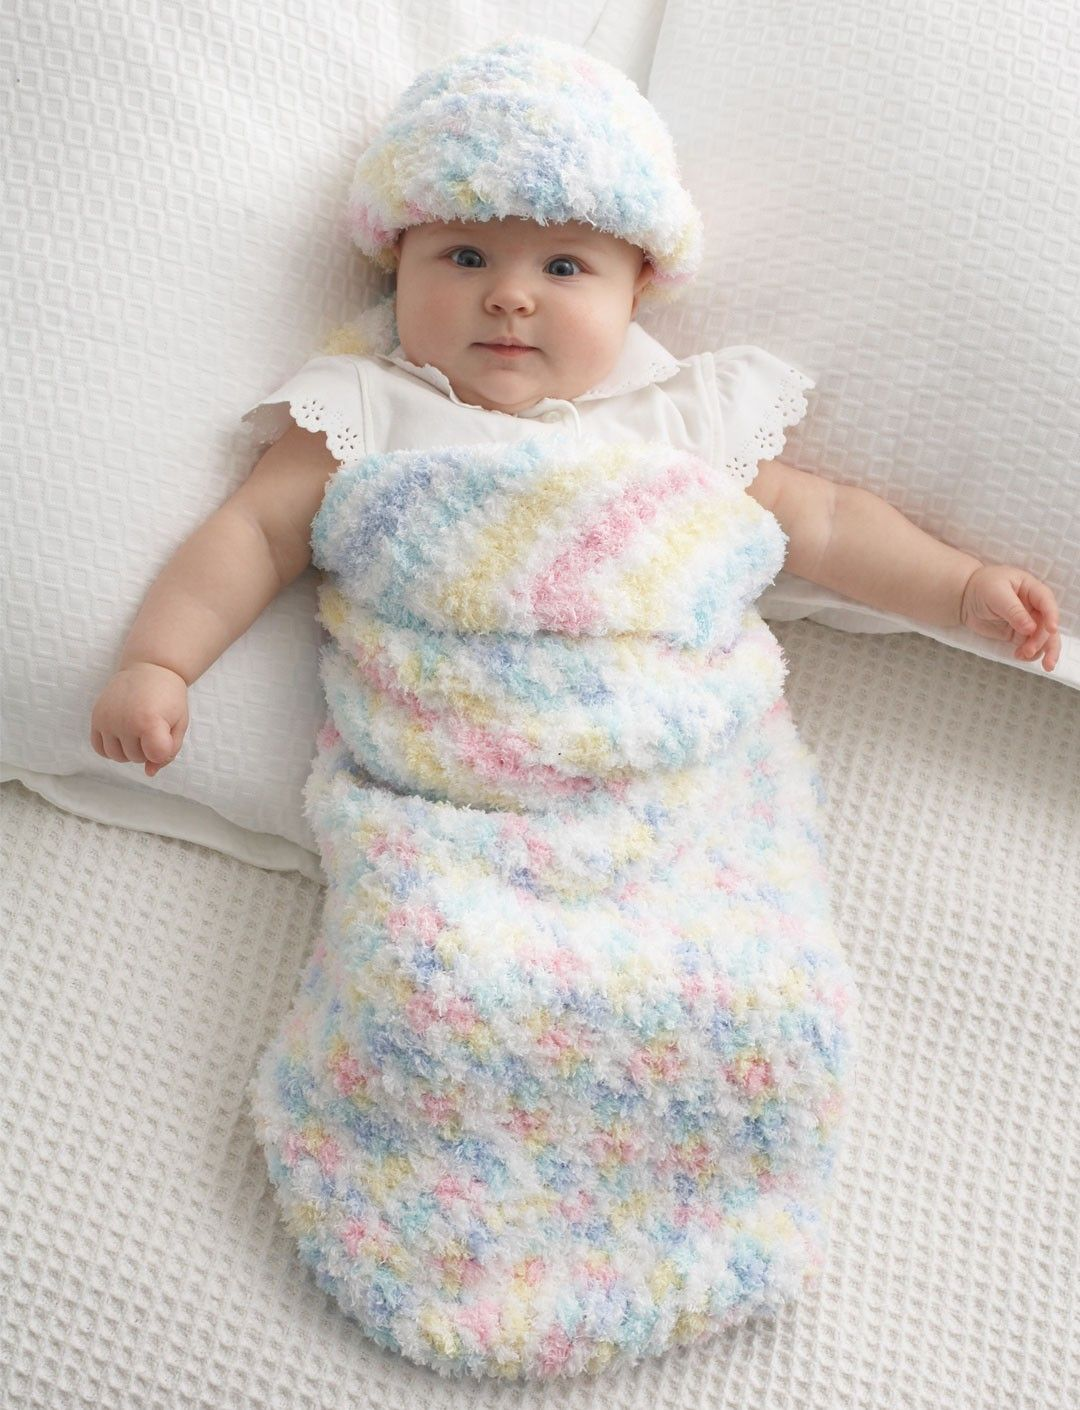 Yarnspirations.com - Bernat Baby Cocoon and Hat | Yarnspirations ...